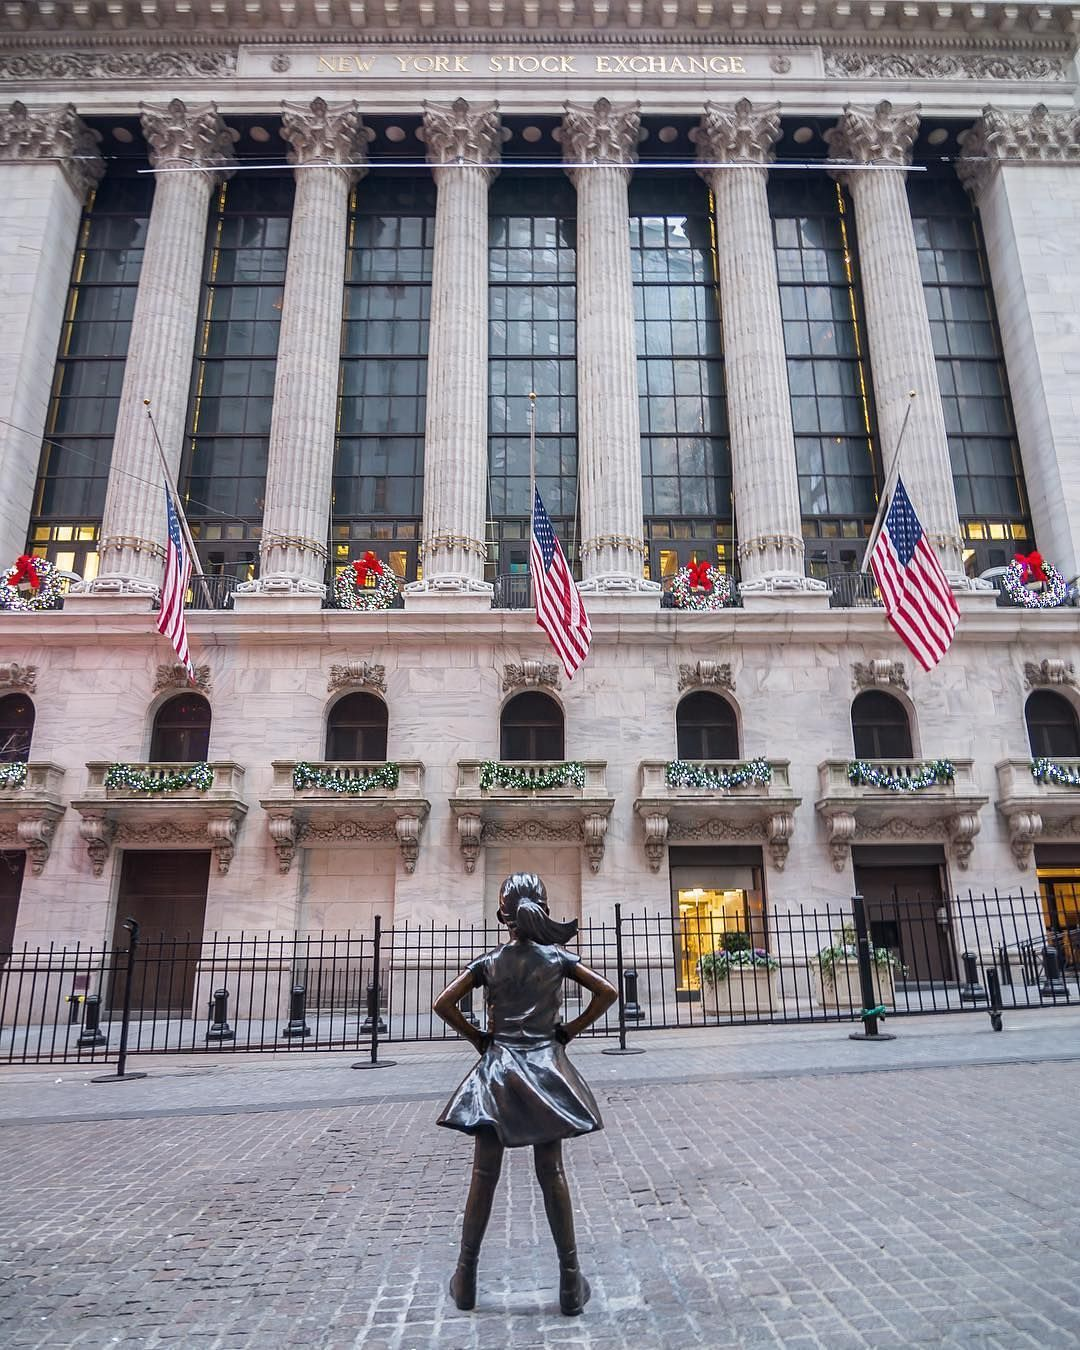 Pin By Cane On New York City Ny Stock Exchange Wall Street News Stock Exchange